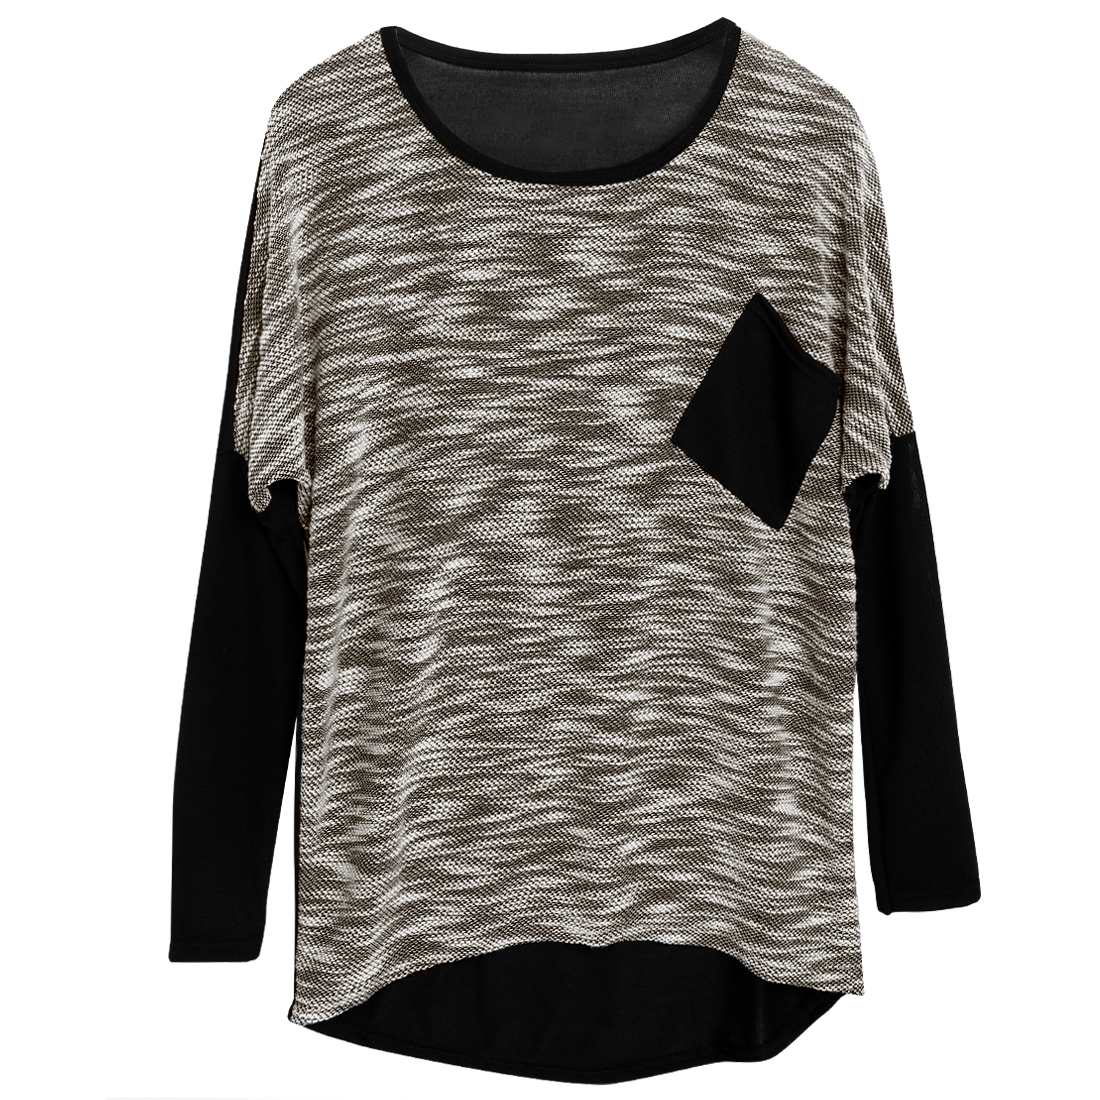 Pullover High Low Hem Spliced Batwing Sleeve Casual Khaki Knit Shirt For Lady S